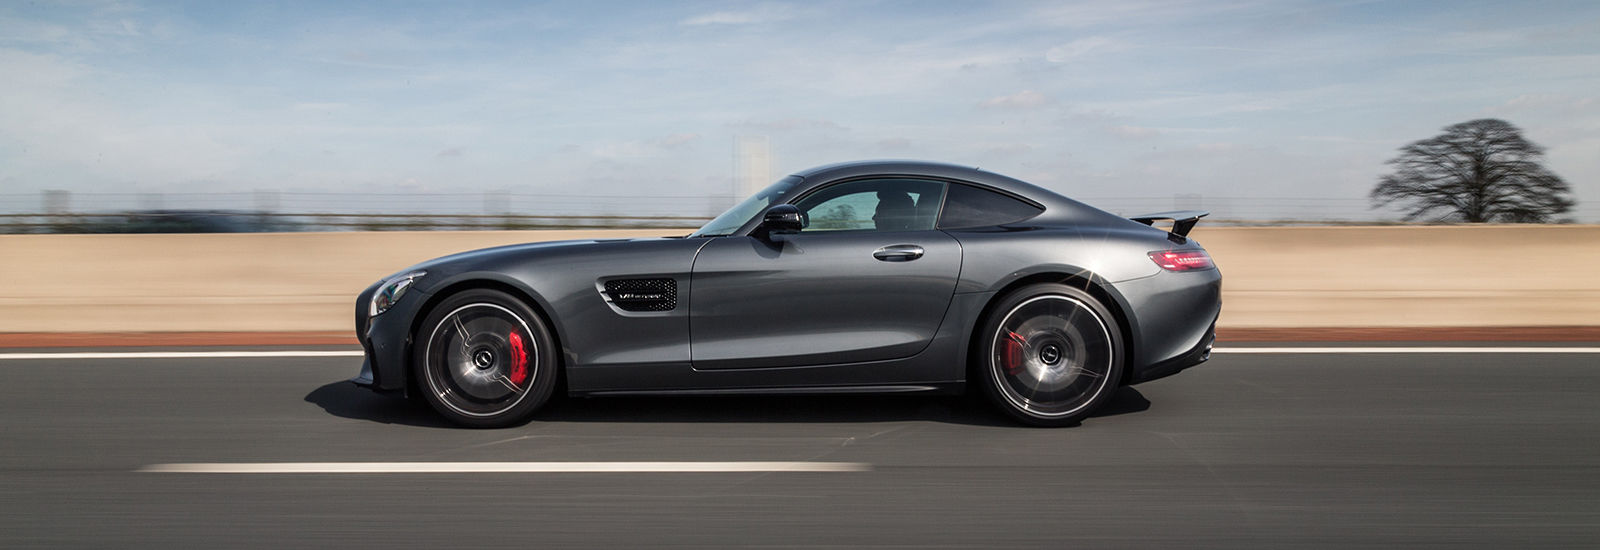 Mercedes-AMG GT R price, specs and release date | carwow